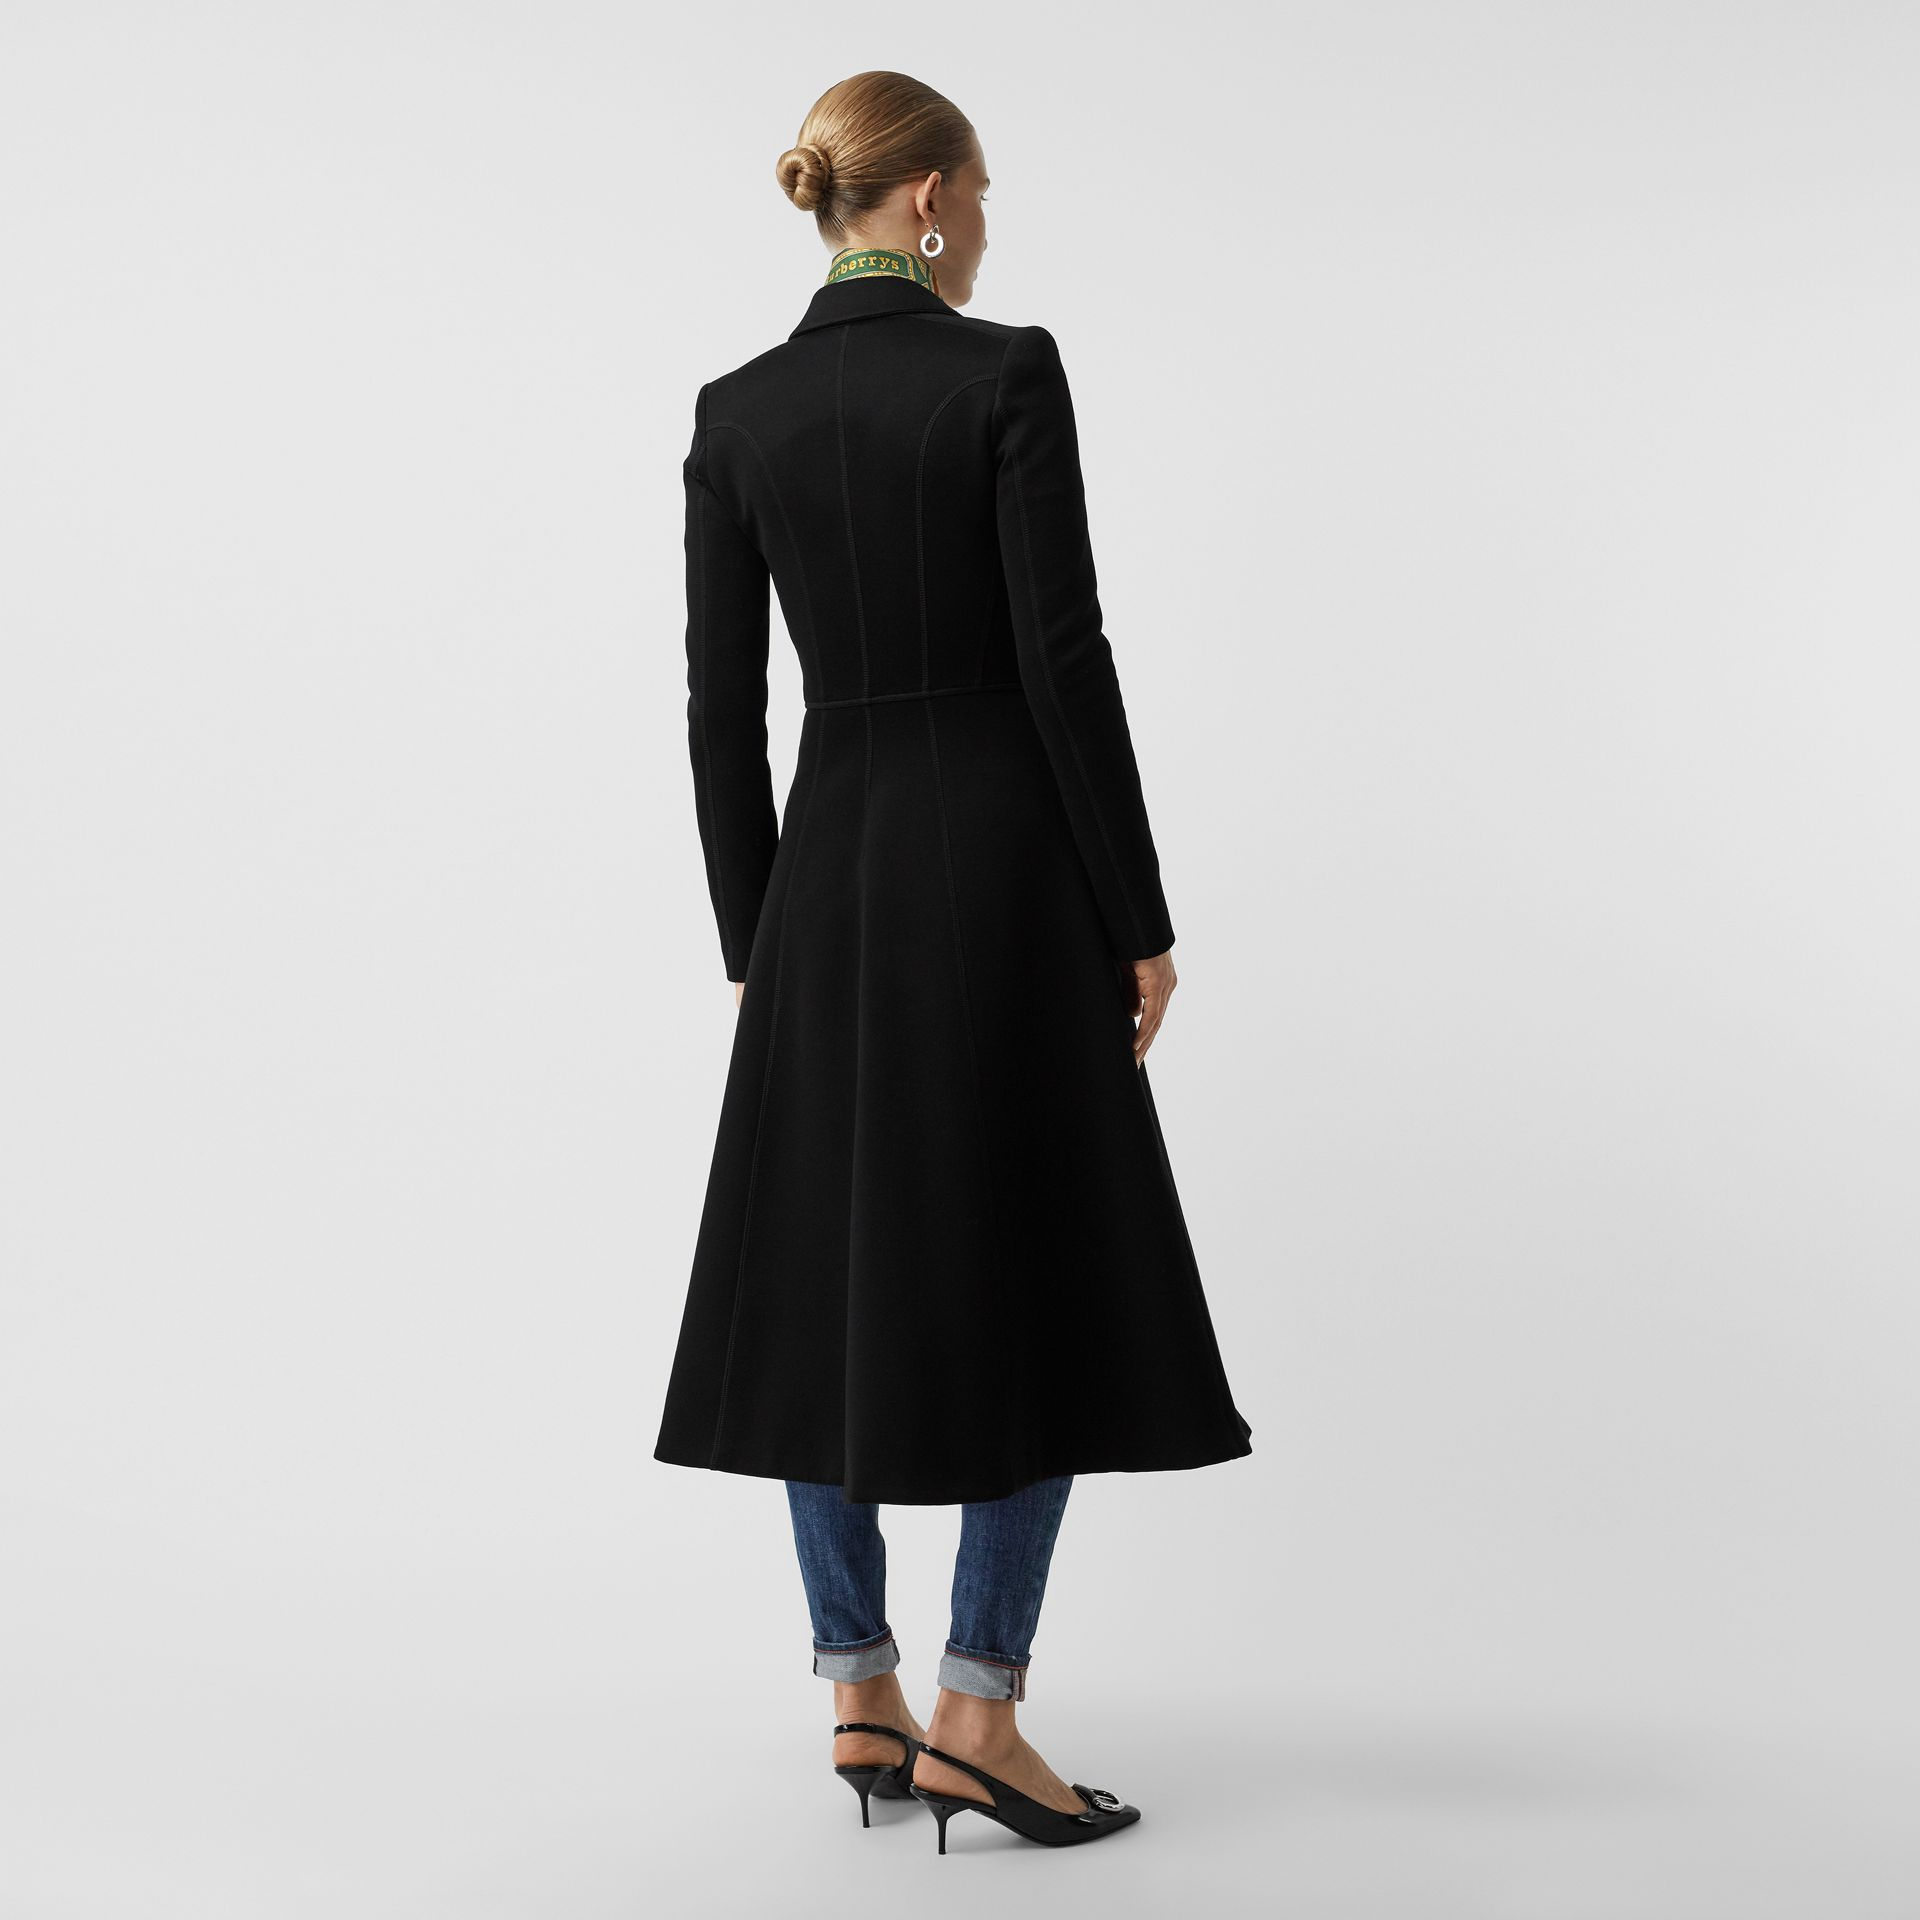 Bonded Cotton Blend Jersey Tailored Coat in Black - Women | Burberry - gallery image 2